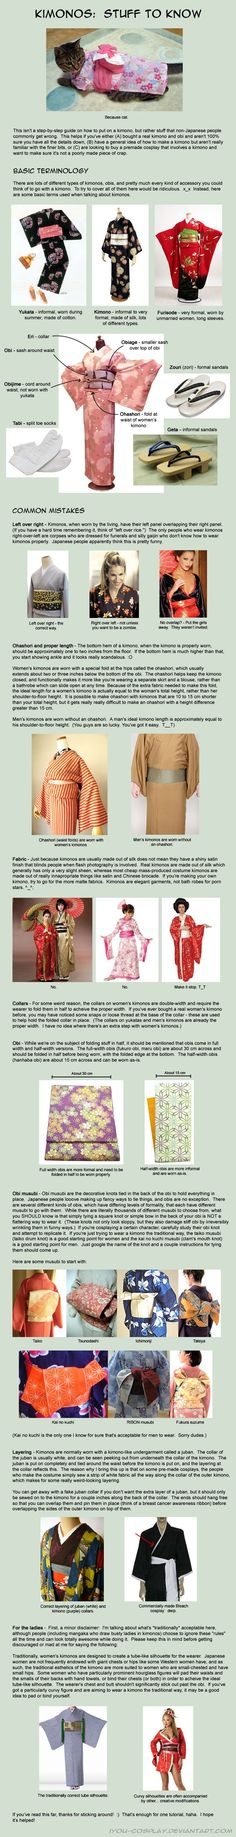 Kimonos: Stuff to Know by iyou-cosplay on DeviantArt Japanese Culture, Japanese Art, Japanese Geisha, Japanese Yukata, Japanese Textiles, Japanese House, Japanese School, Japanese Outfits, Japanese Fashion